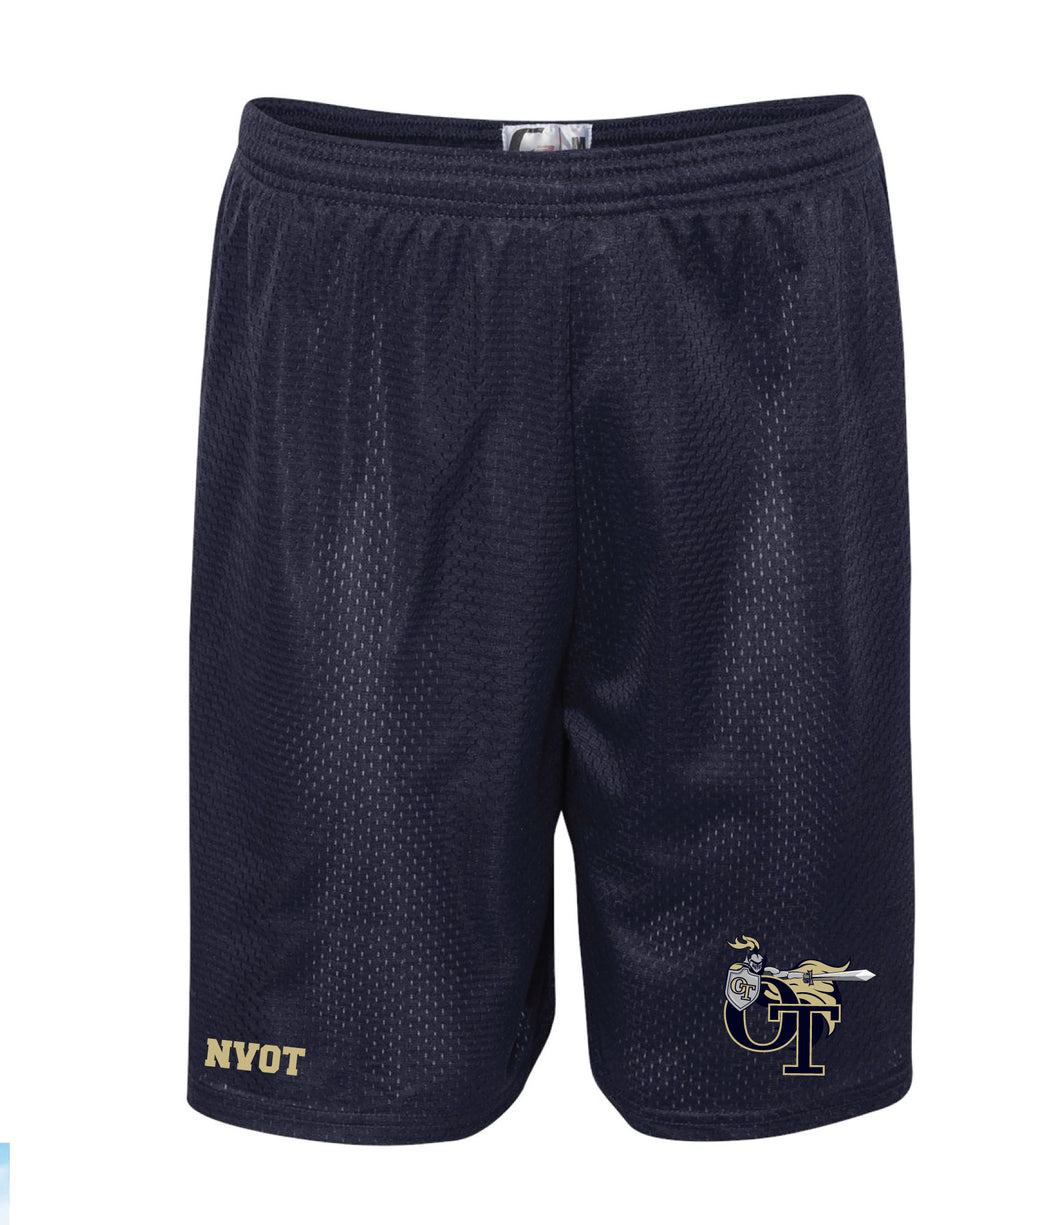 NVOT Wrestling Tech Shorts - Navy